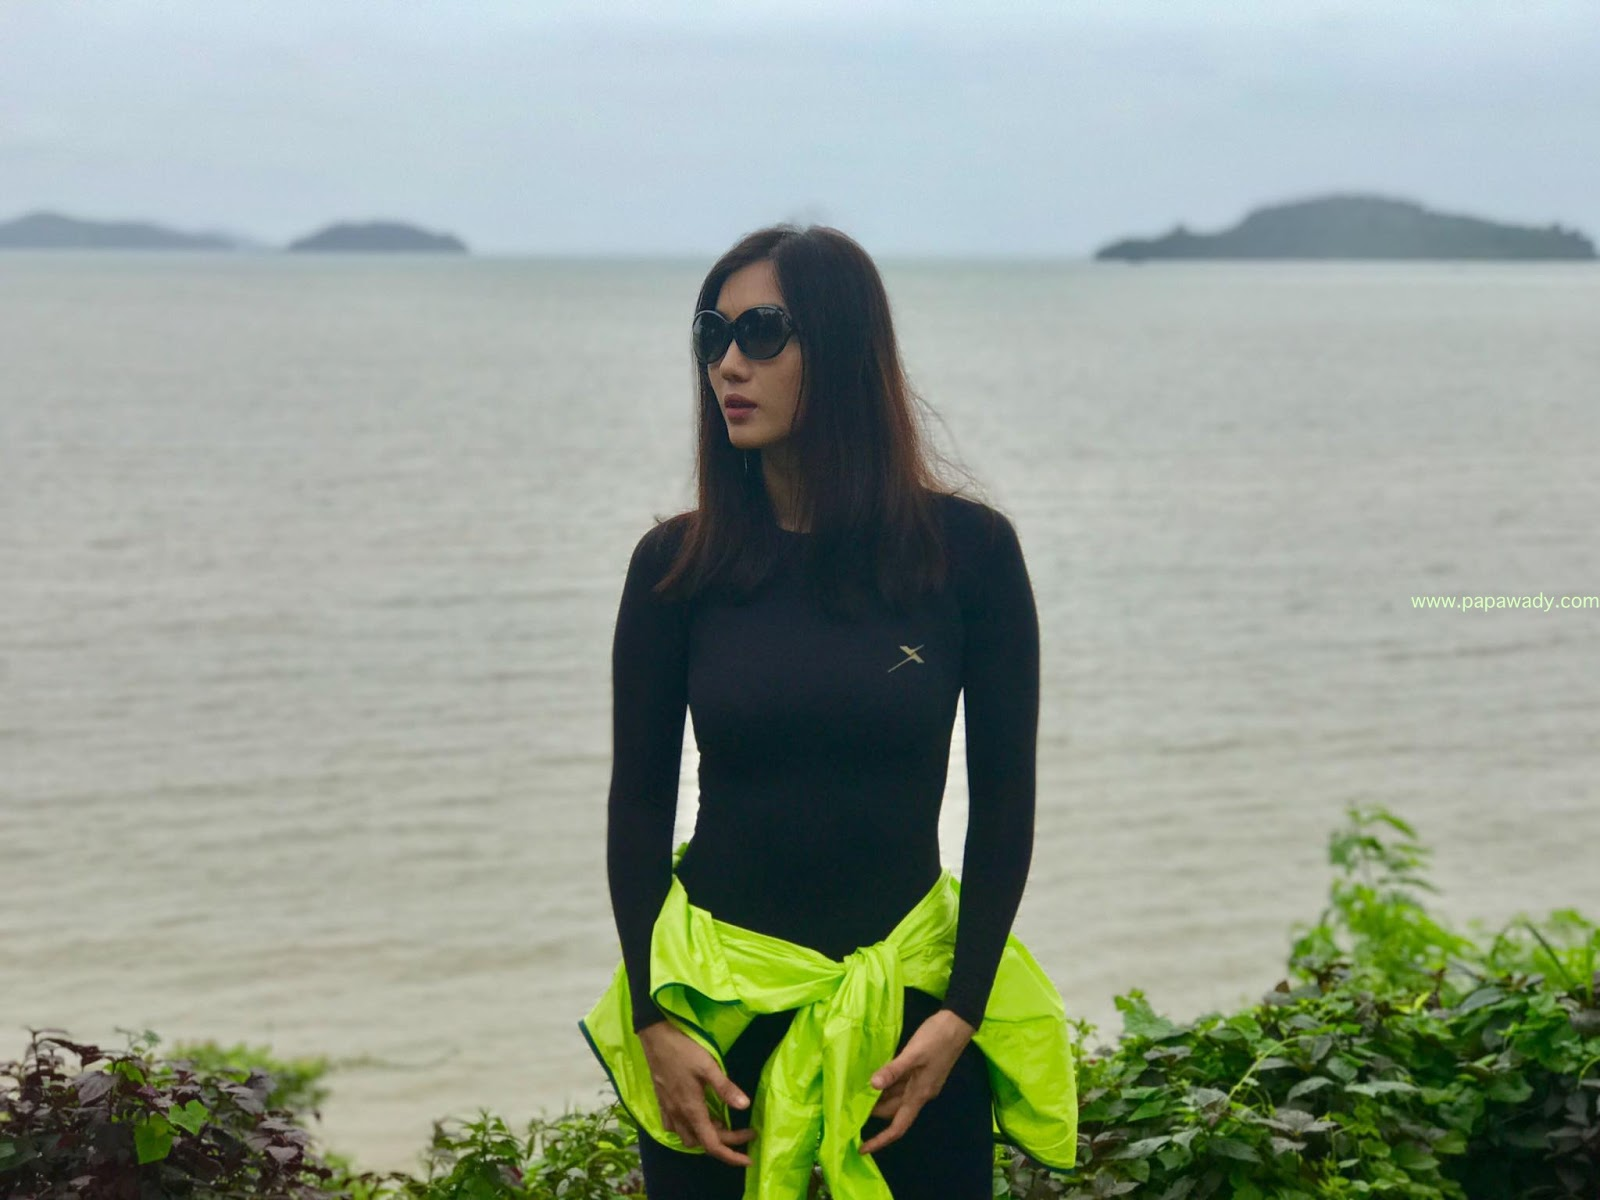 Lu Lu Aung Says Goodbye To Kaw Thaung and shares some beautiful photos